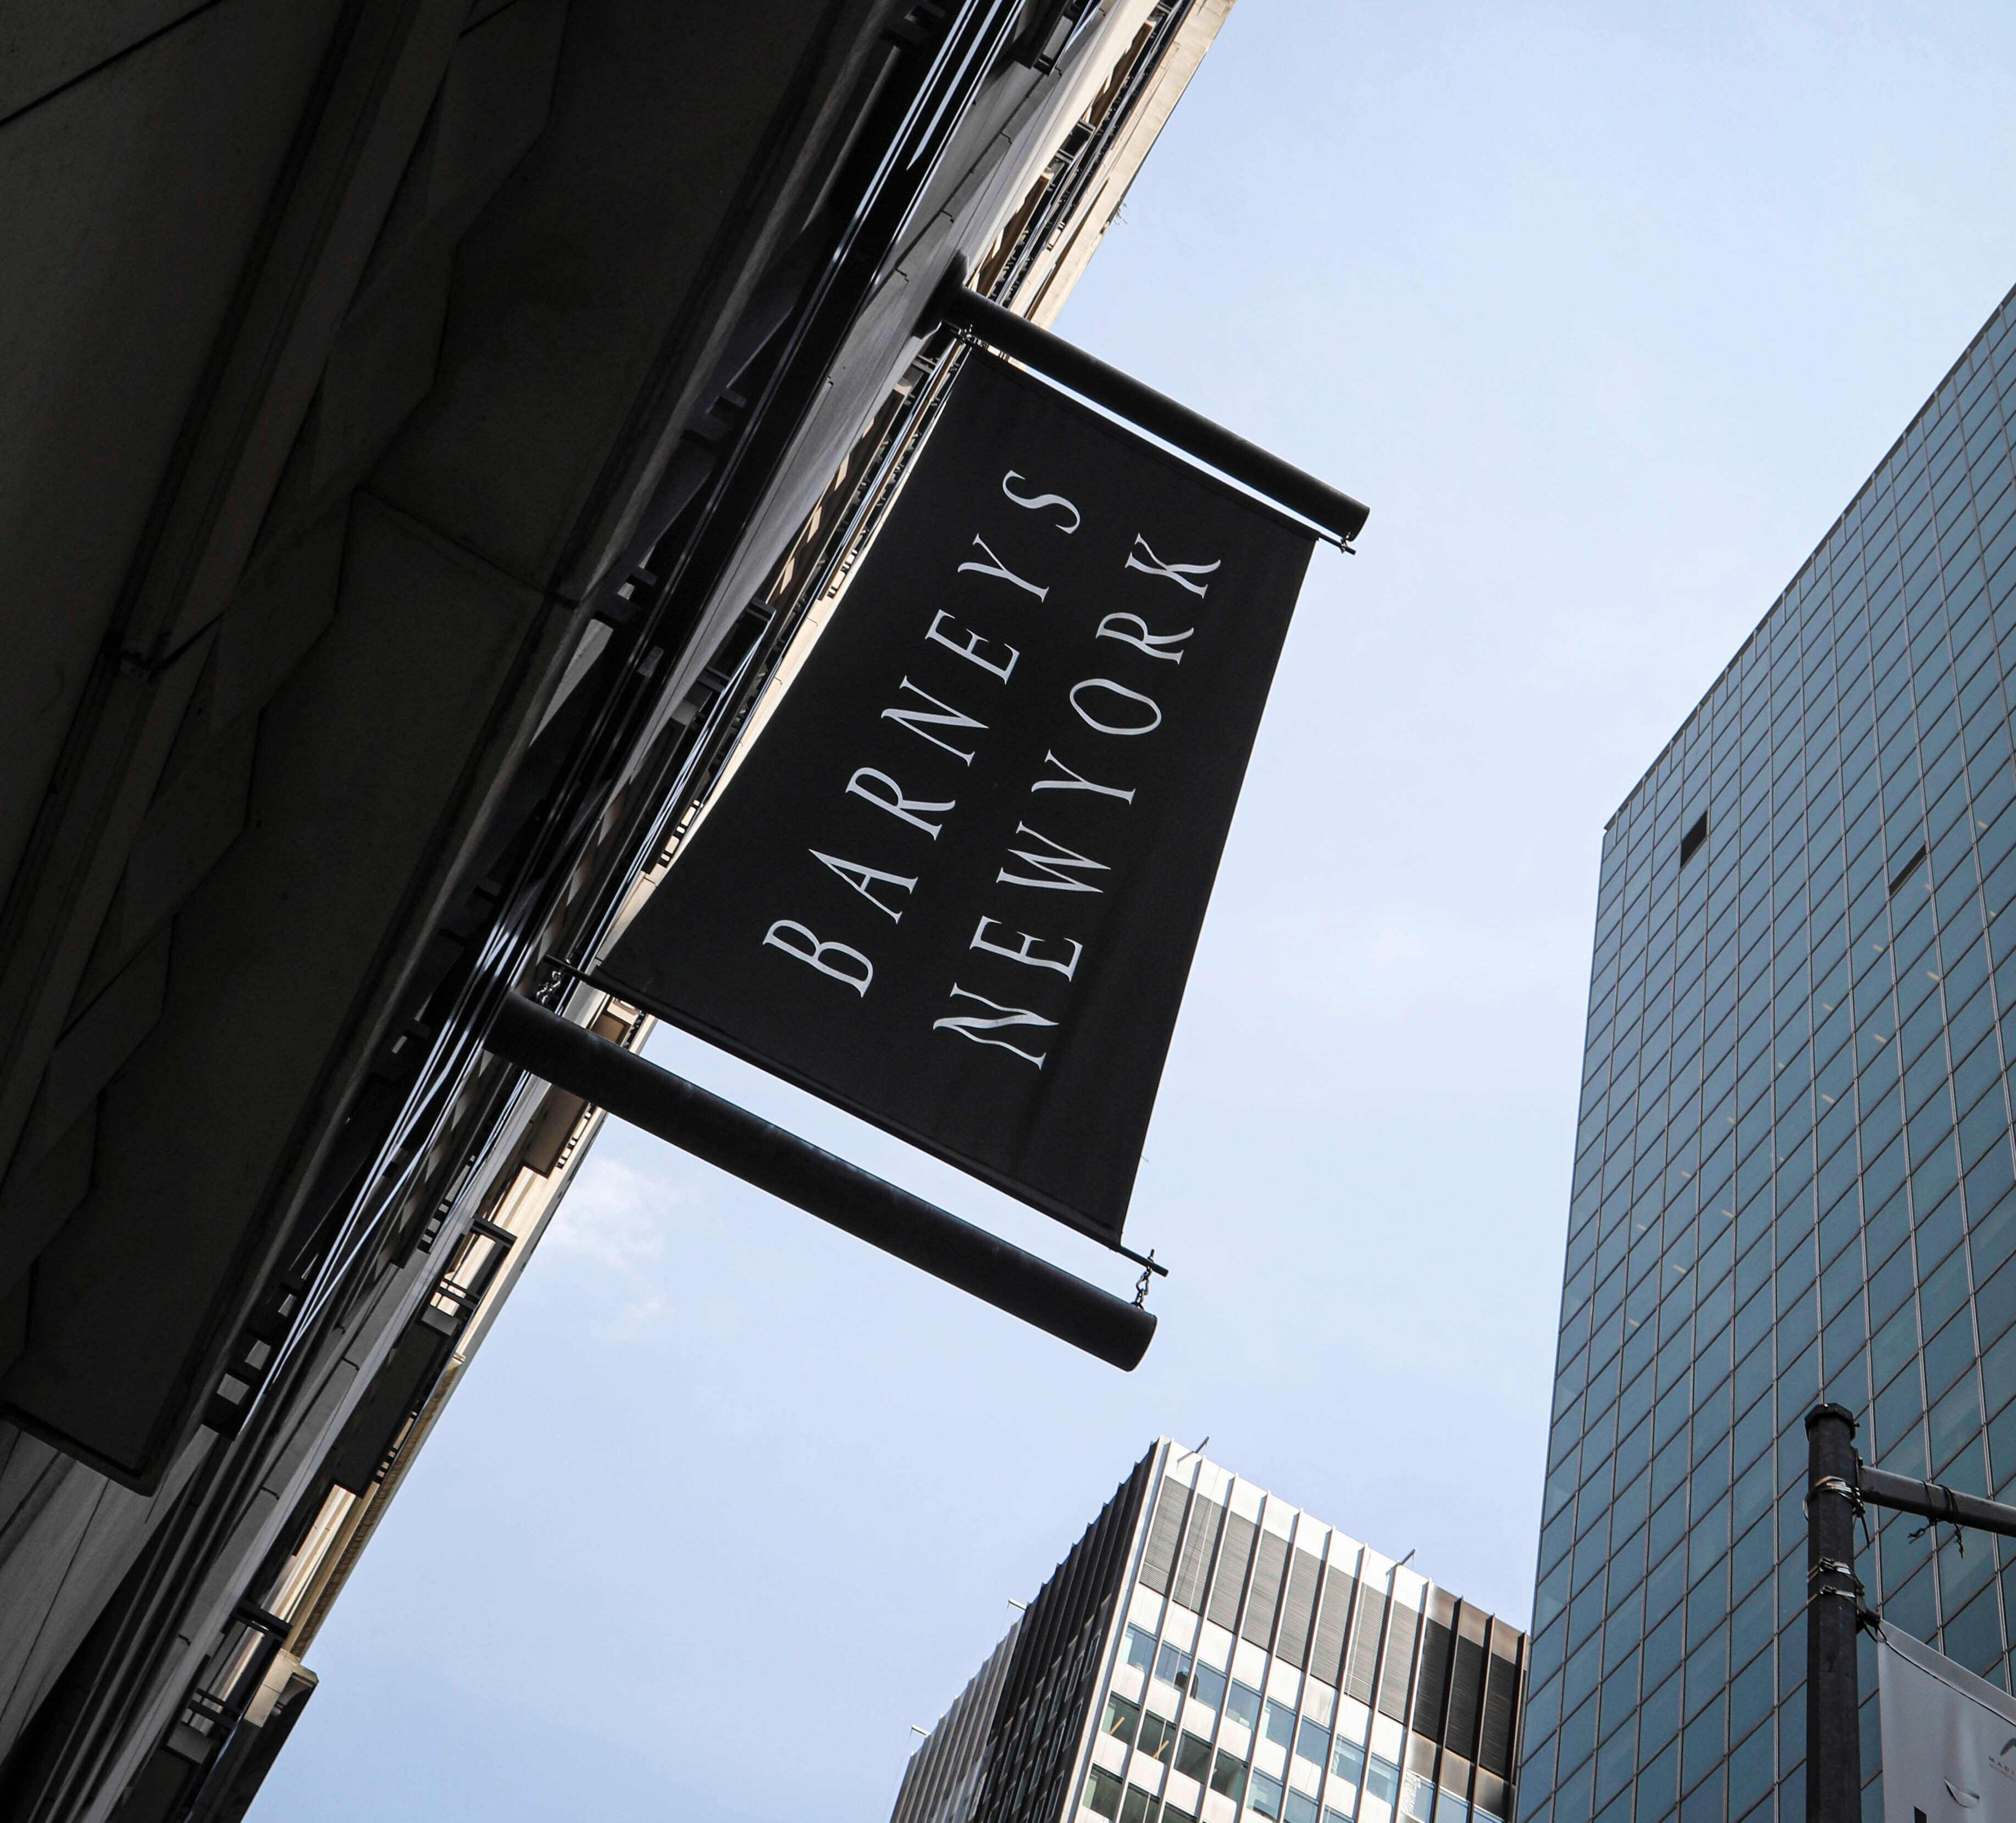 Signage for Barneys New York department store is displayed on an outdoor banner, in New York. The luxury retailer could be joining a growing list of retailers that have filed for bankruptcyBarneys -Options, New York, USA - 16 Jul 2019